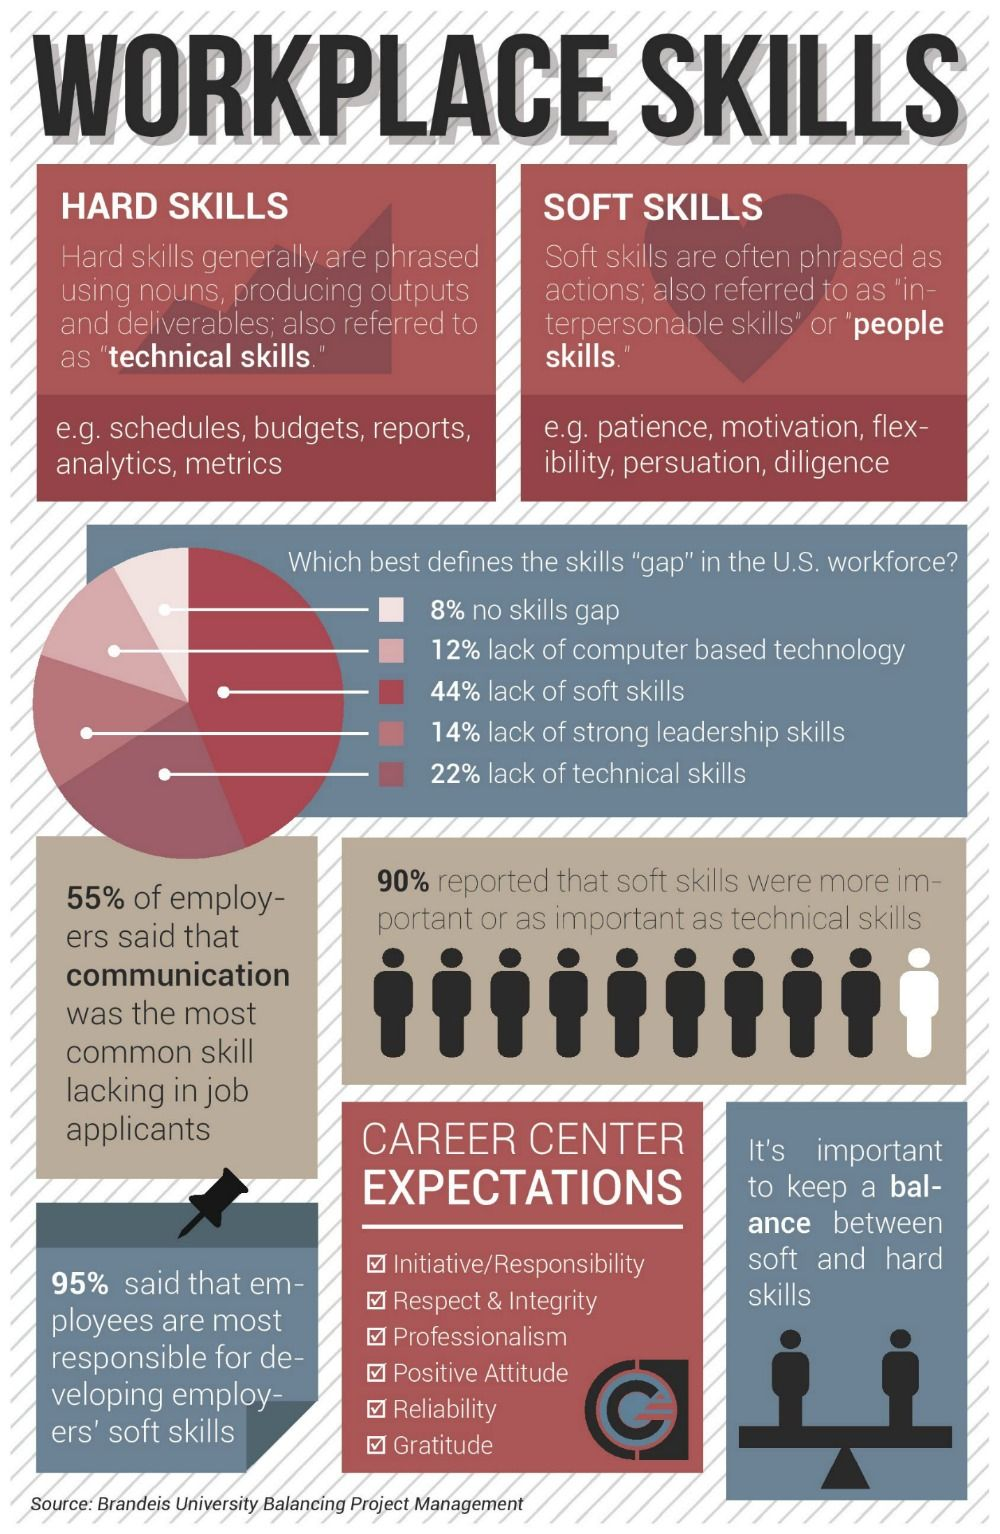 Workplace Skills Infographic Bearing News Cover letter